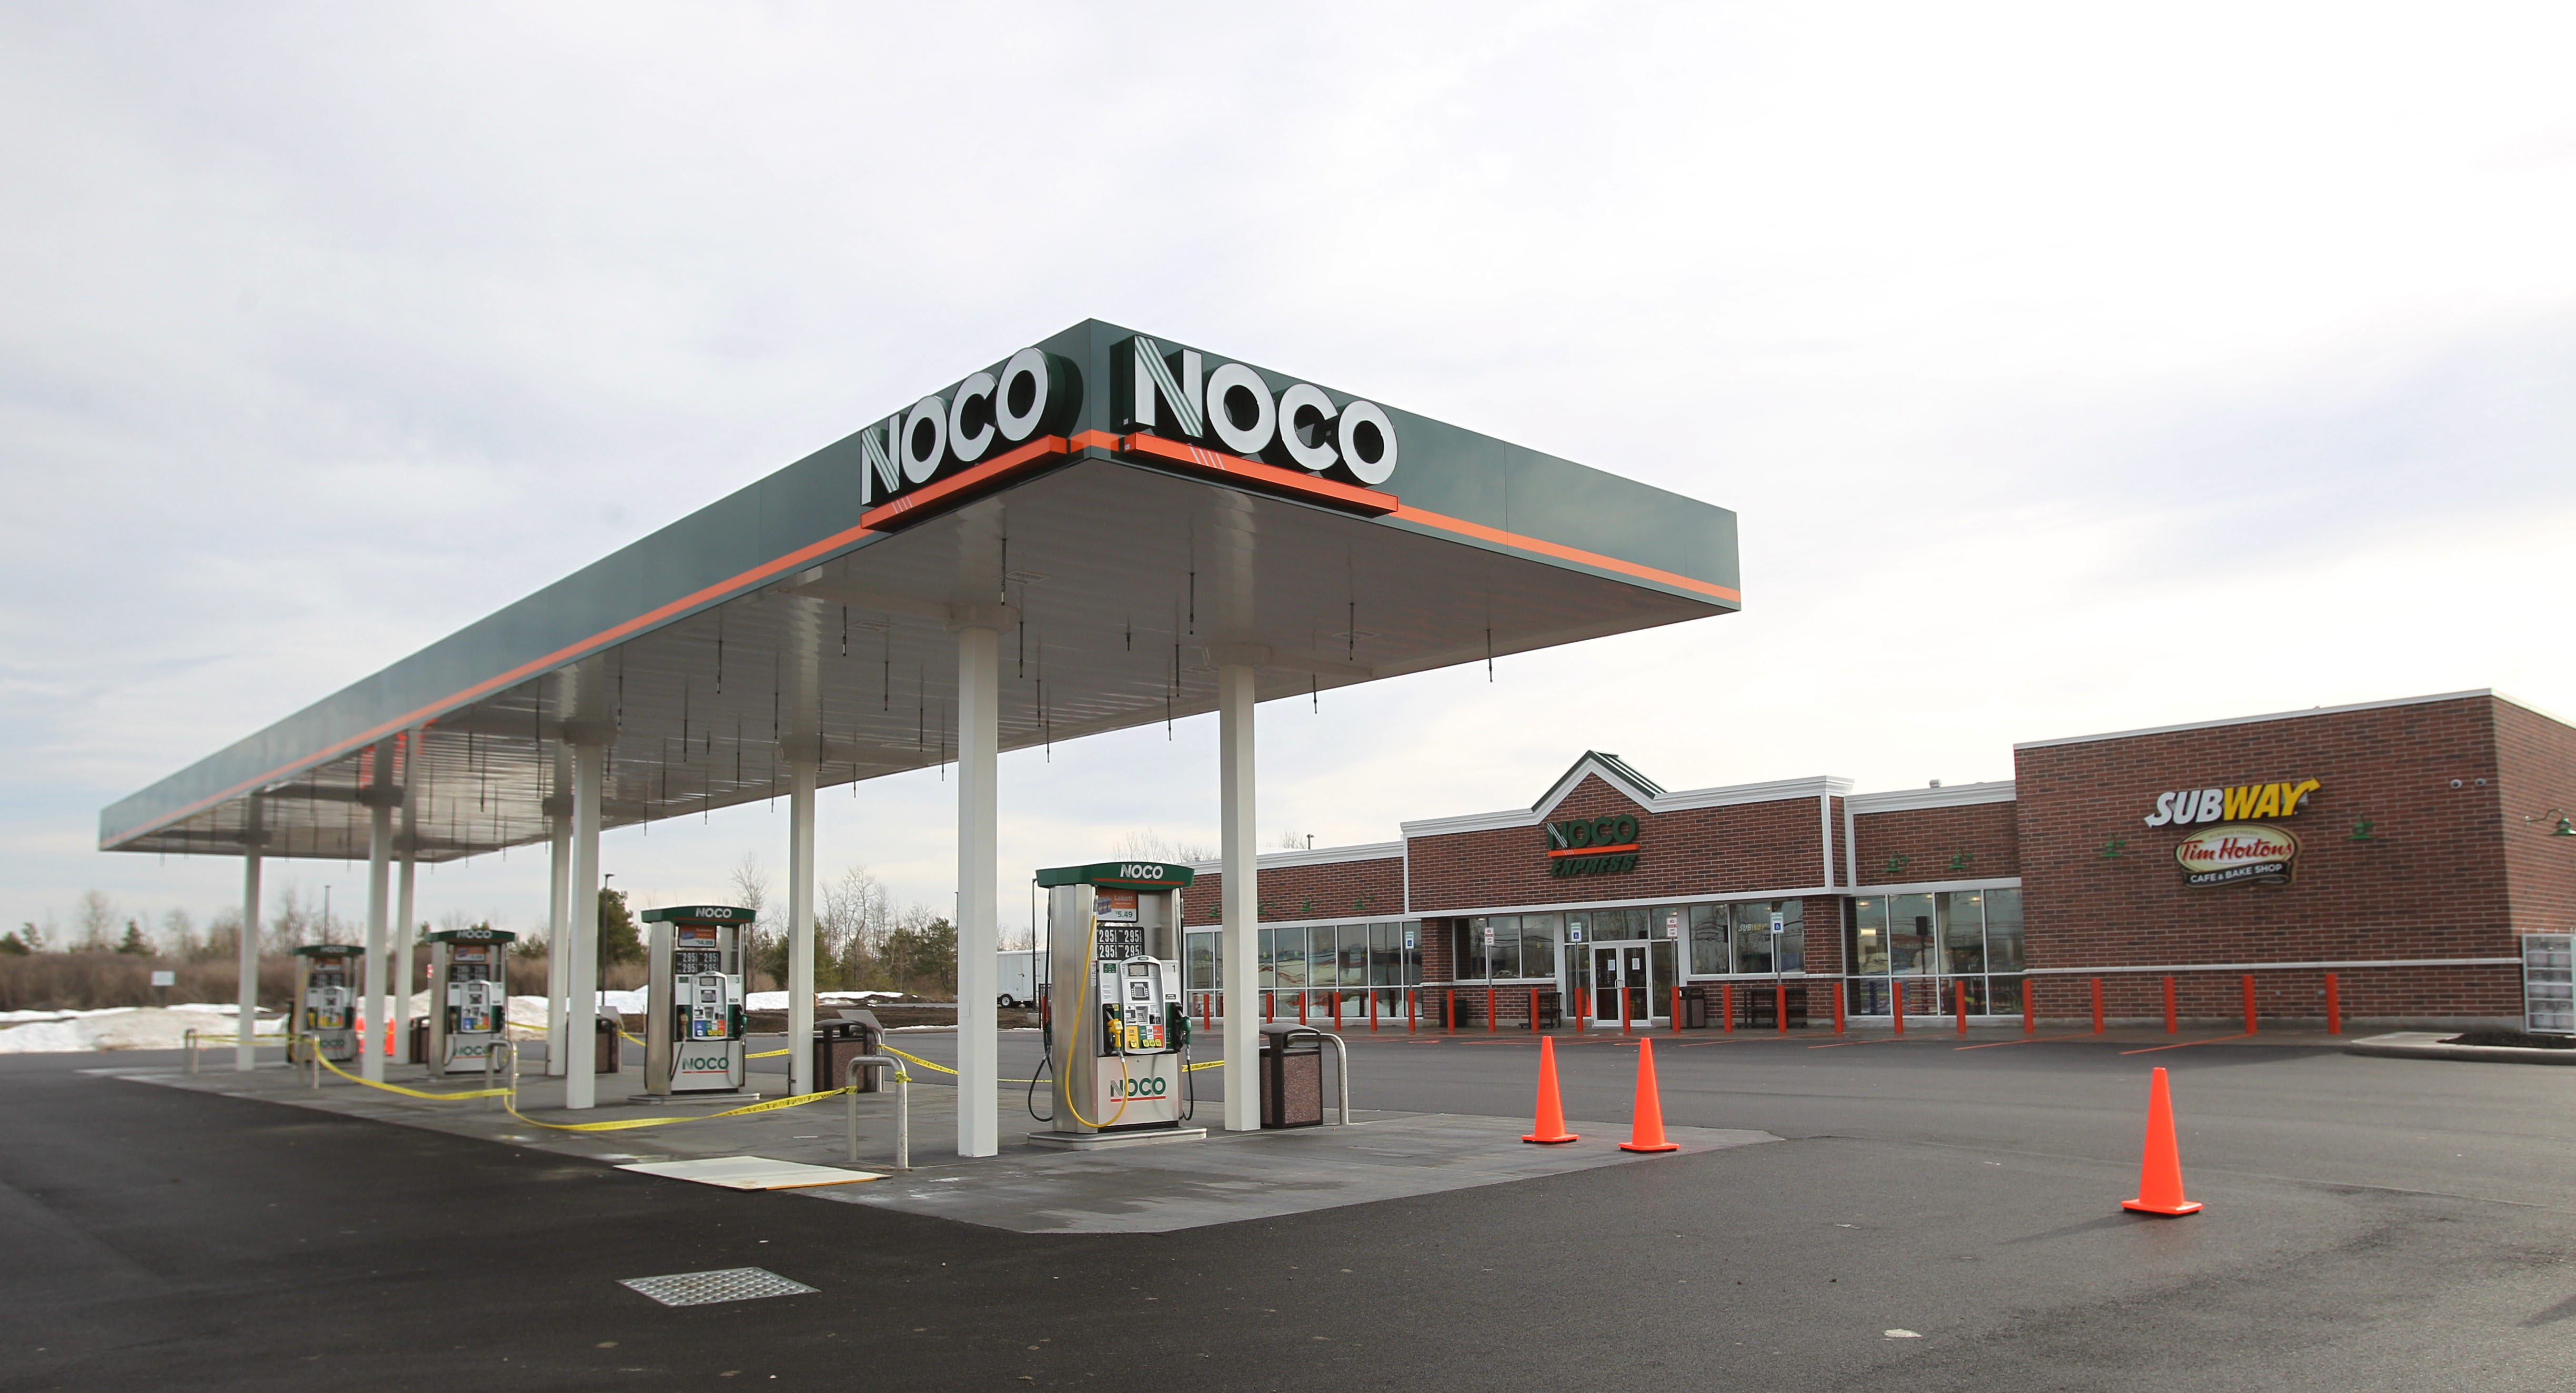 I worked at Noco Express for 6 years. Heres what you dont know.